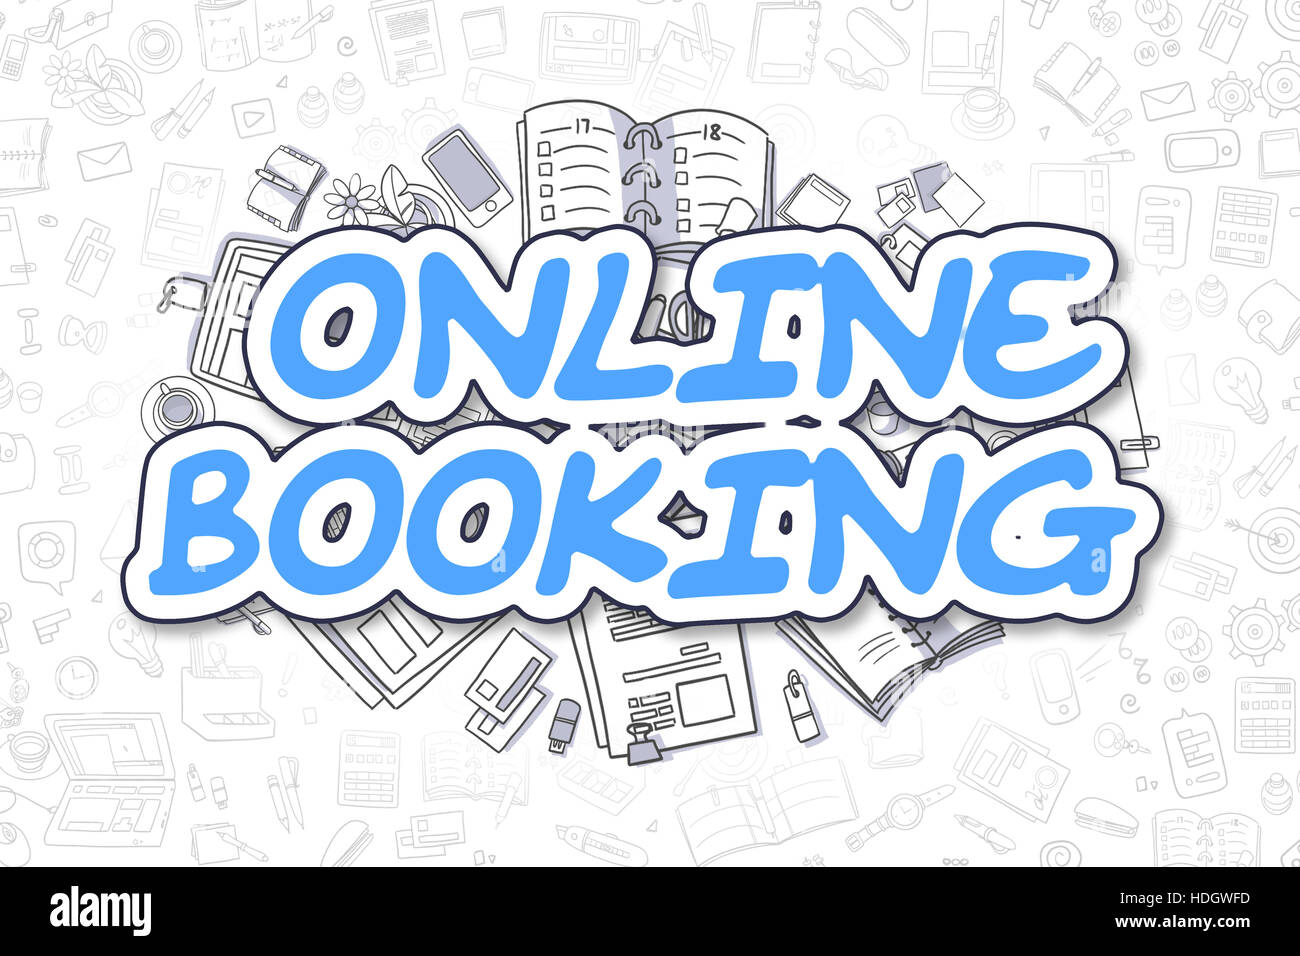 Online Booking - Cartoon Blue Text. Business Concept. - Stock Image